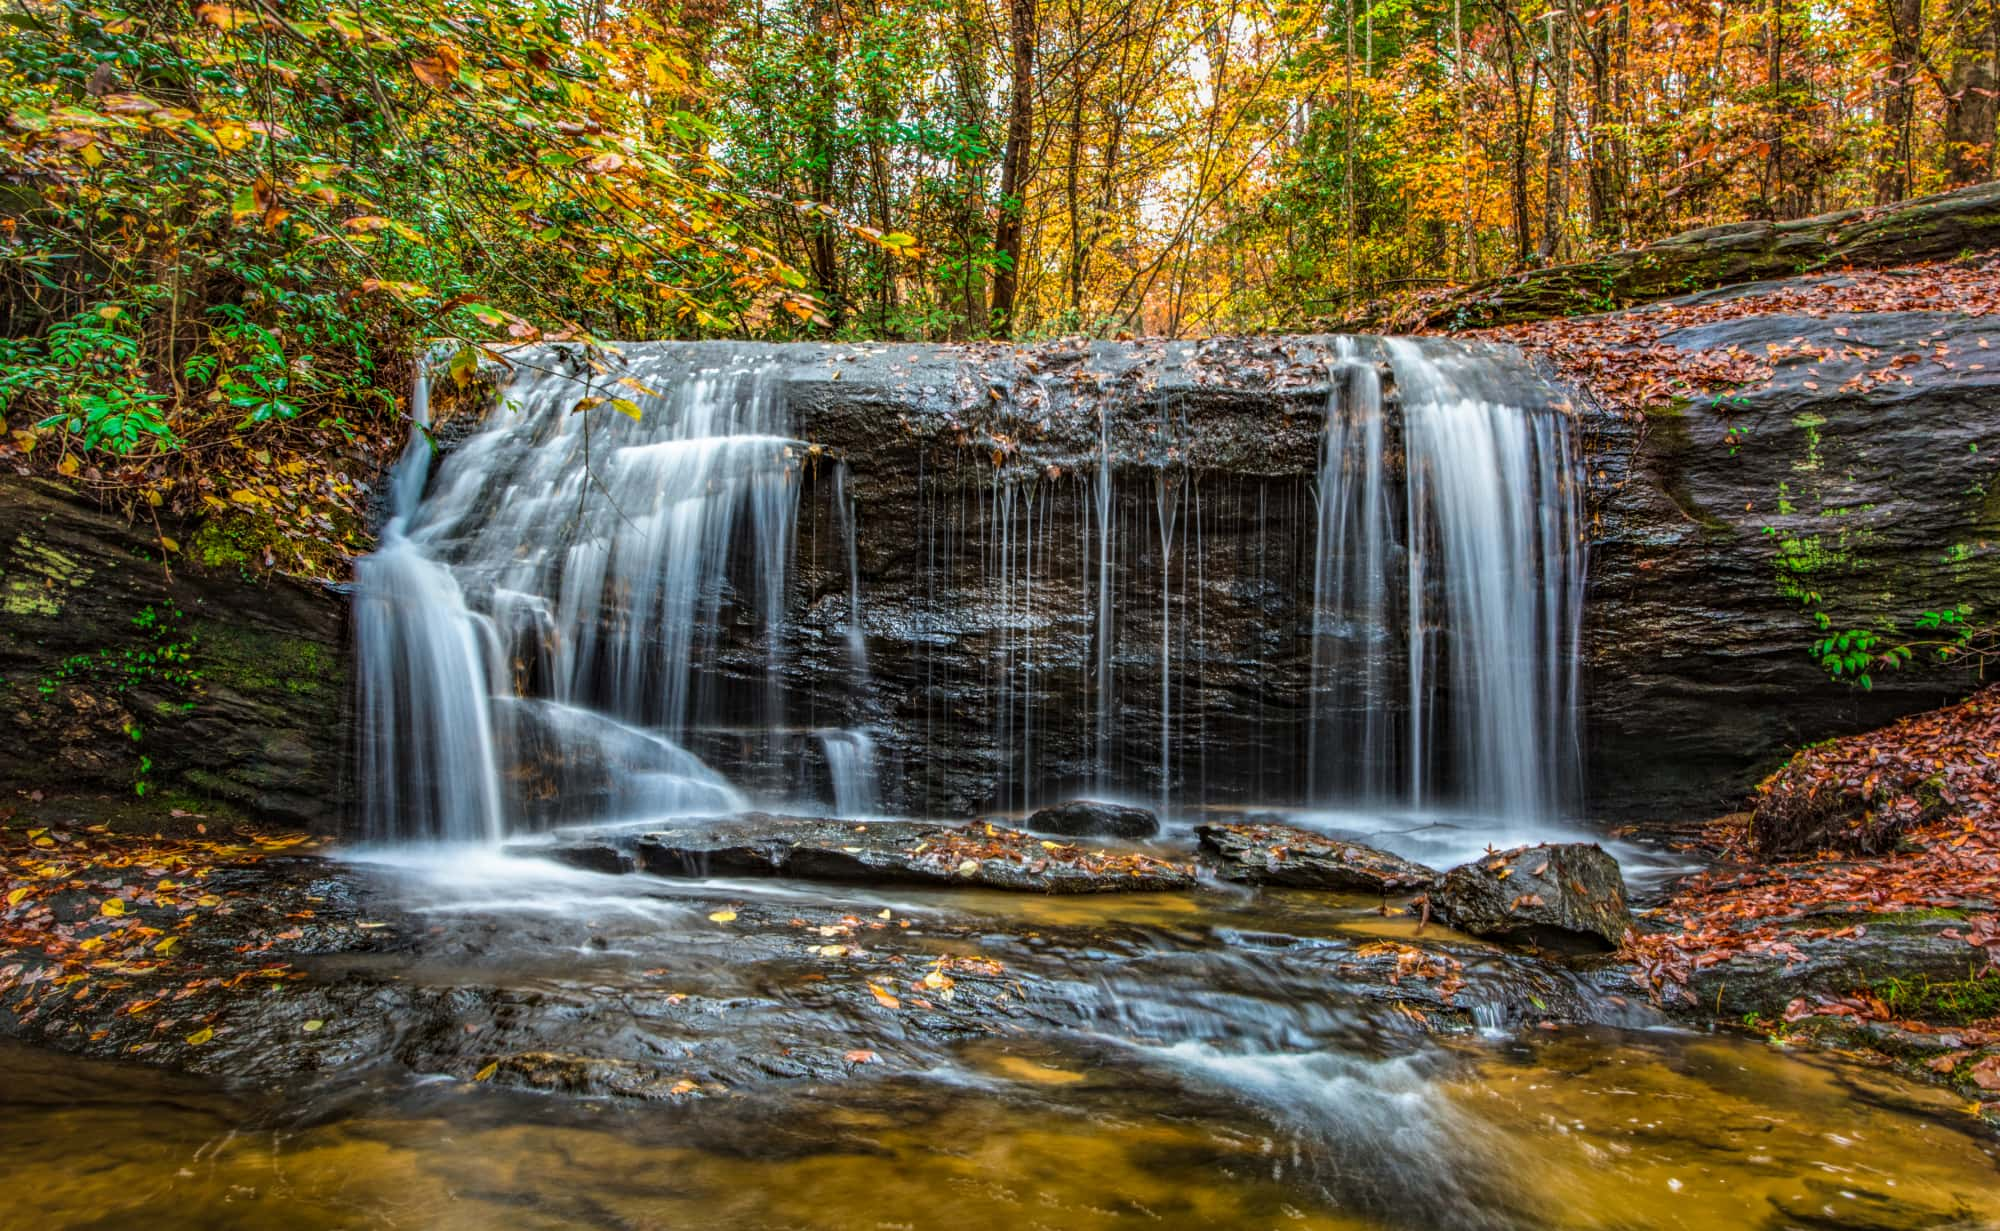 Panoramic photo of waterfall in SC with fall foliage in the background